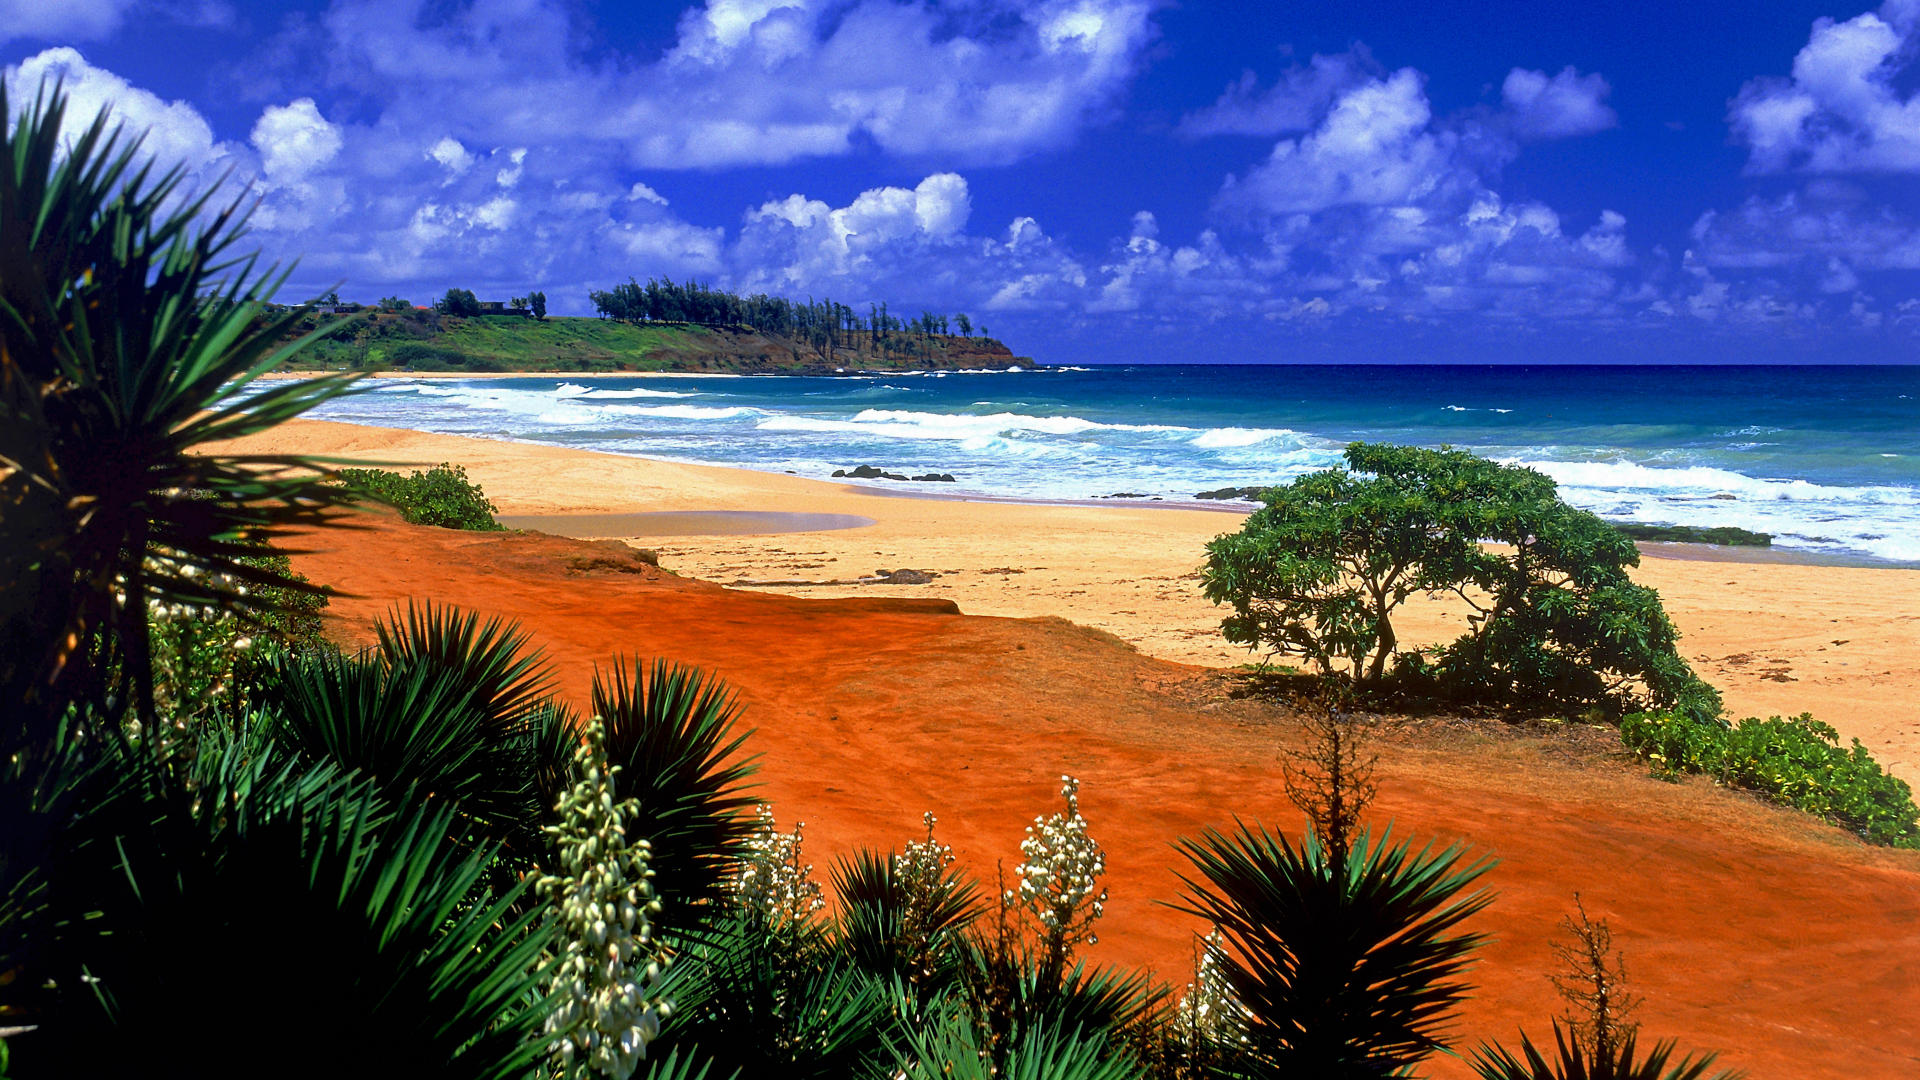 backgrounds beach desktop hawaii kealia kauai 1920x1080